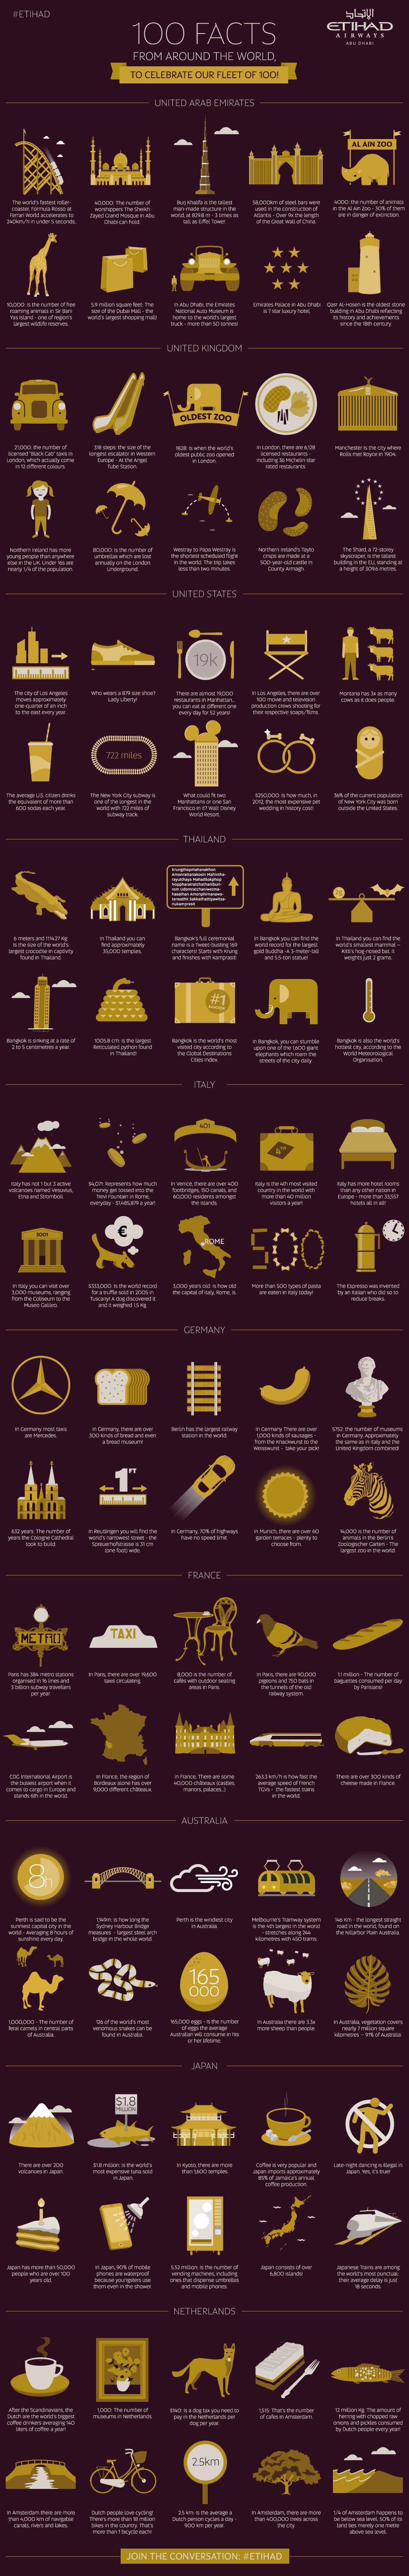 100 Facts From Around the World